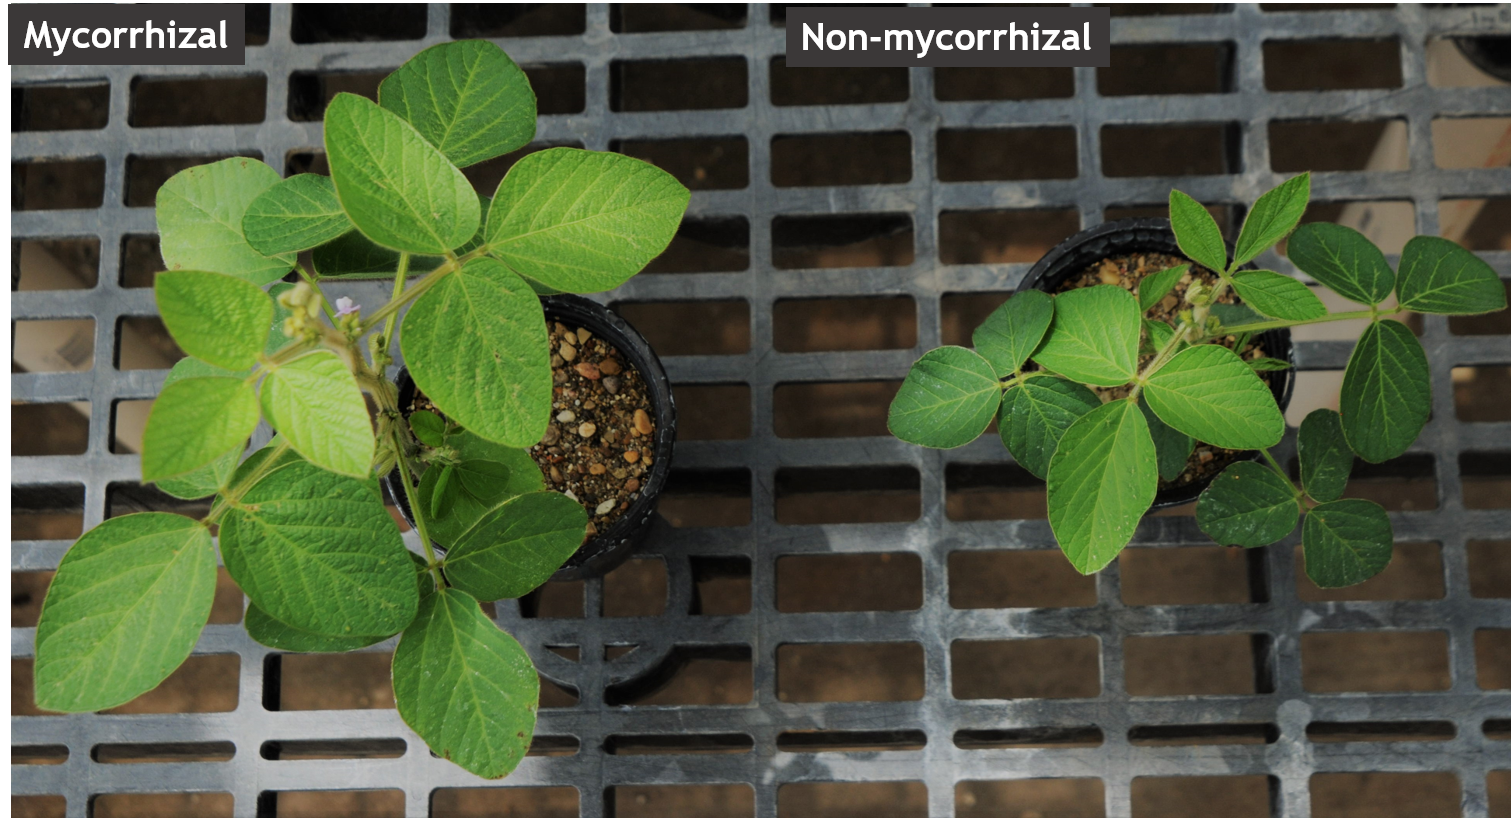 Soybean plants growing with and without mycorrhizae. Photo courtesy of Michelle Pawlowski.